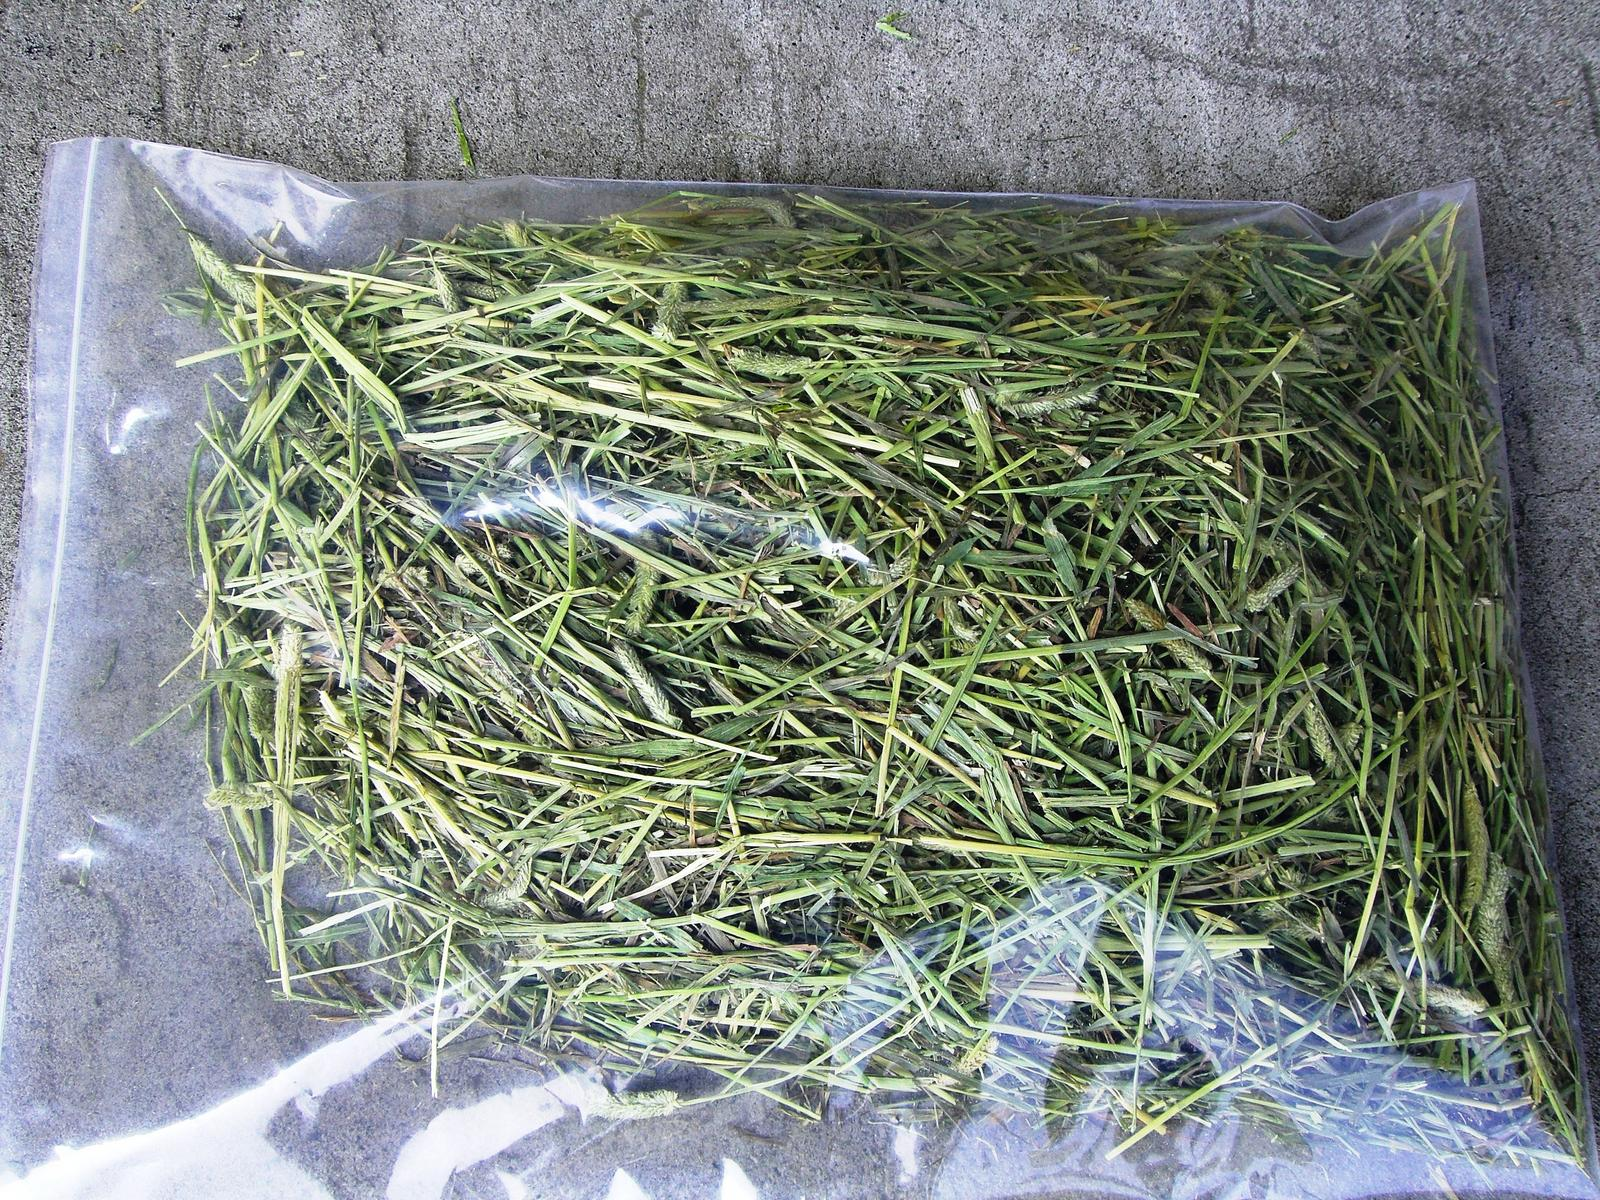 In world ◆ ◇ drying only ◇ ◆ Canada produced ハイミネラルチモシー (grass) 500 g